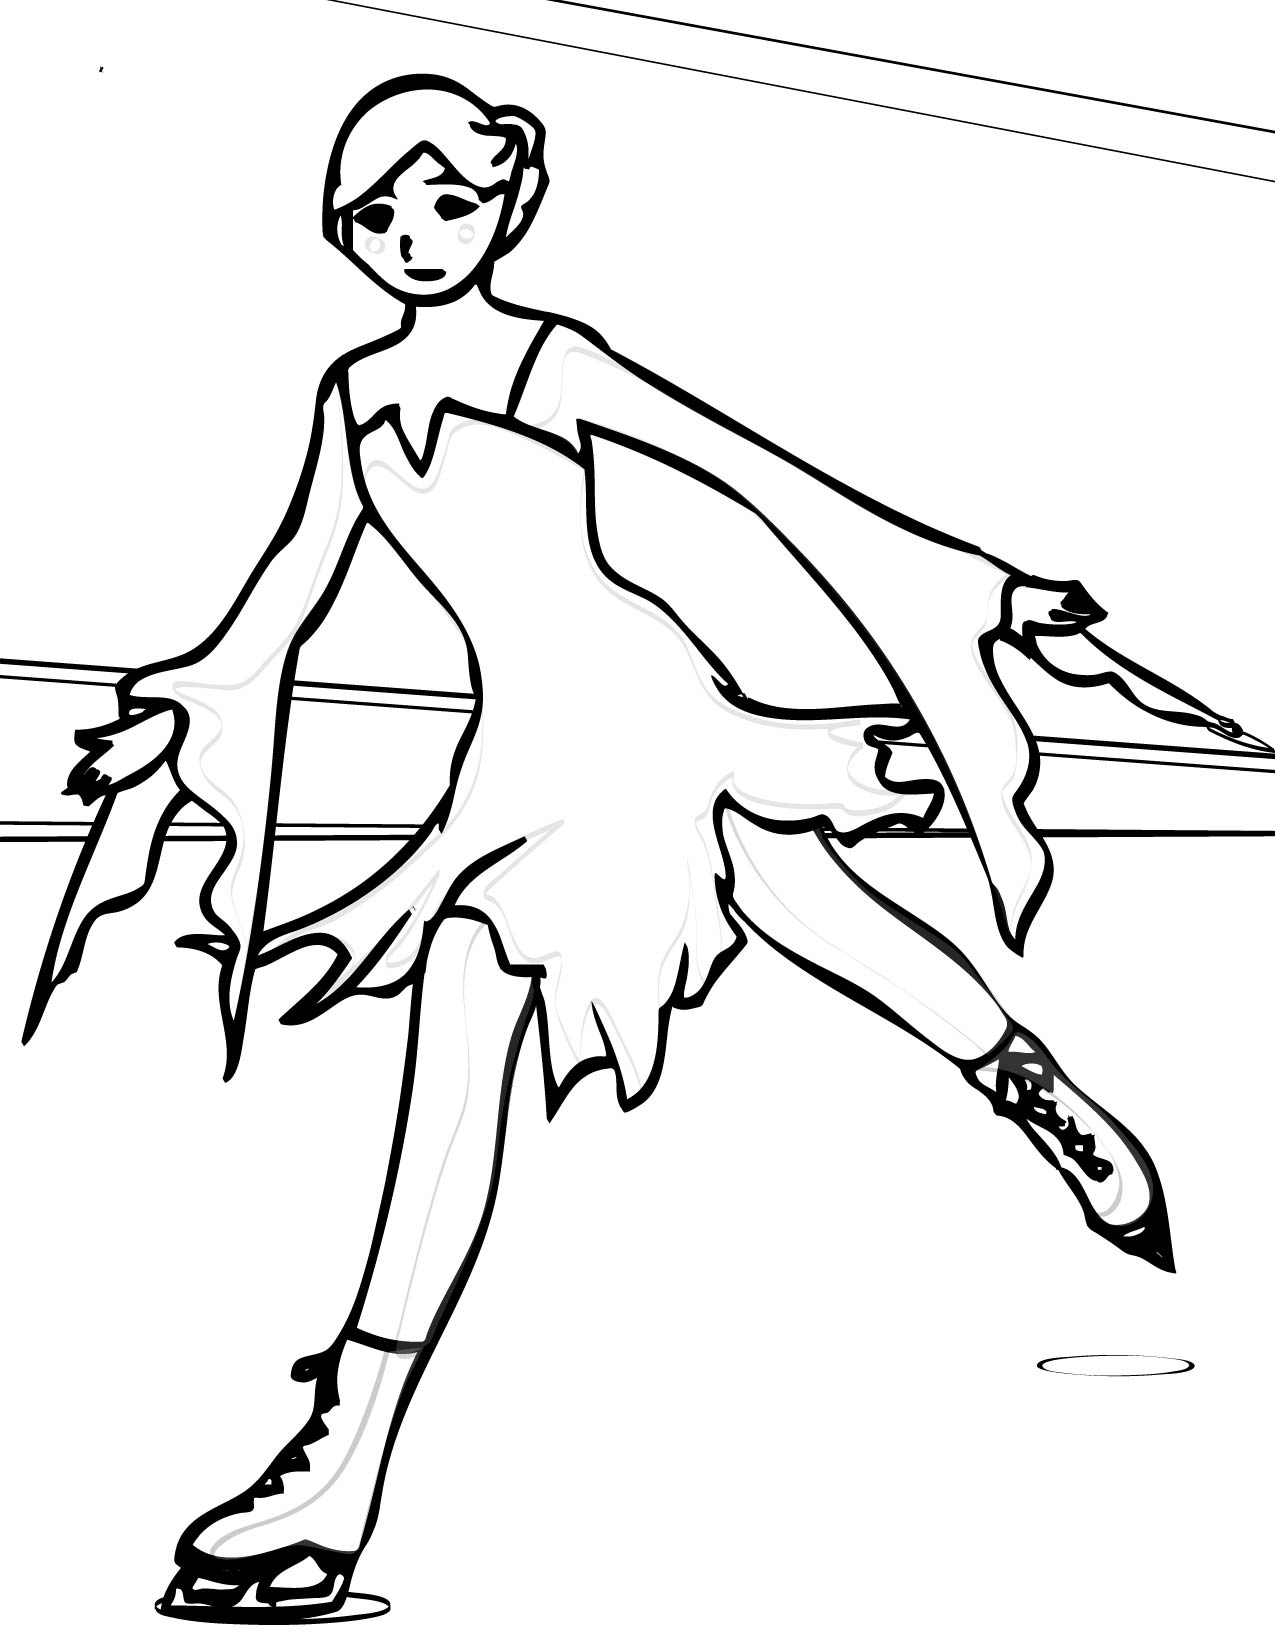 1275x1650 Ice Skating Coloring Page